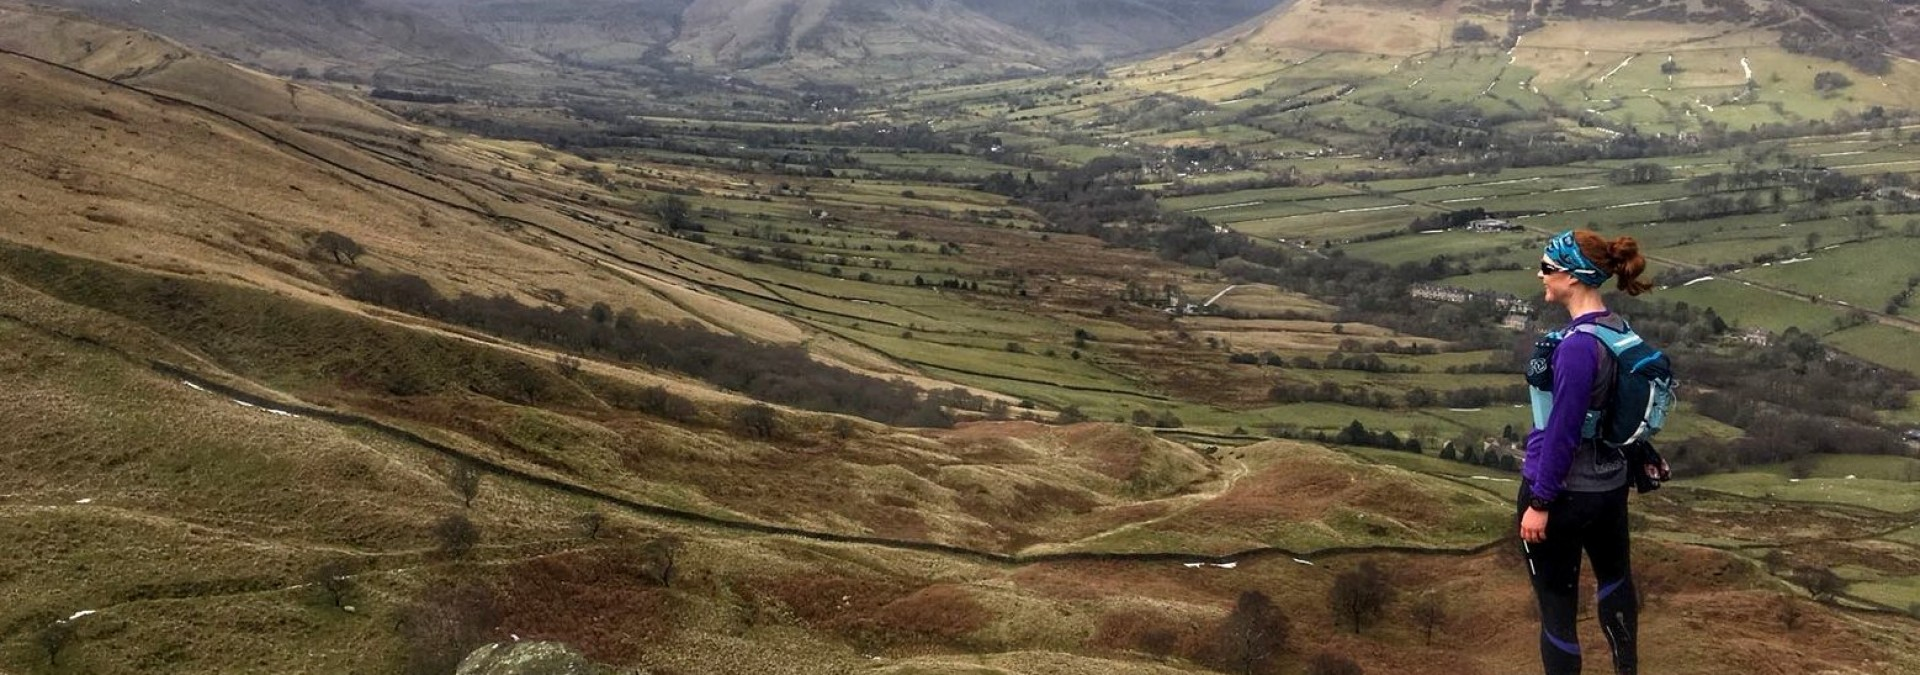 Edale Valley, The Peak District